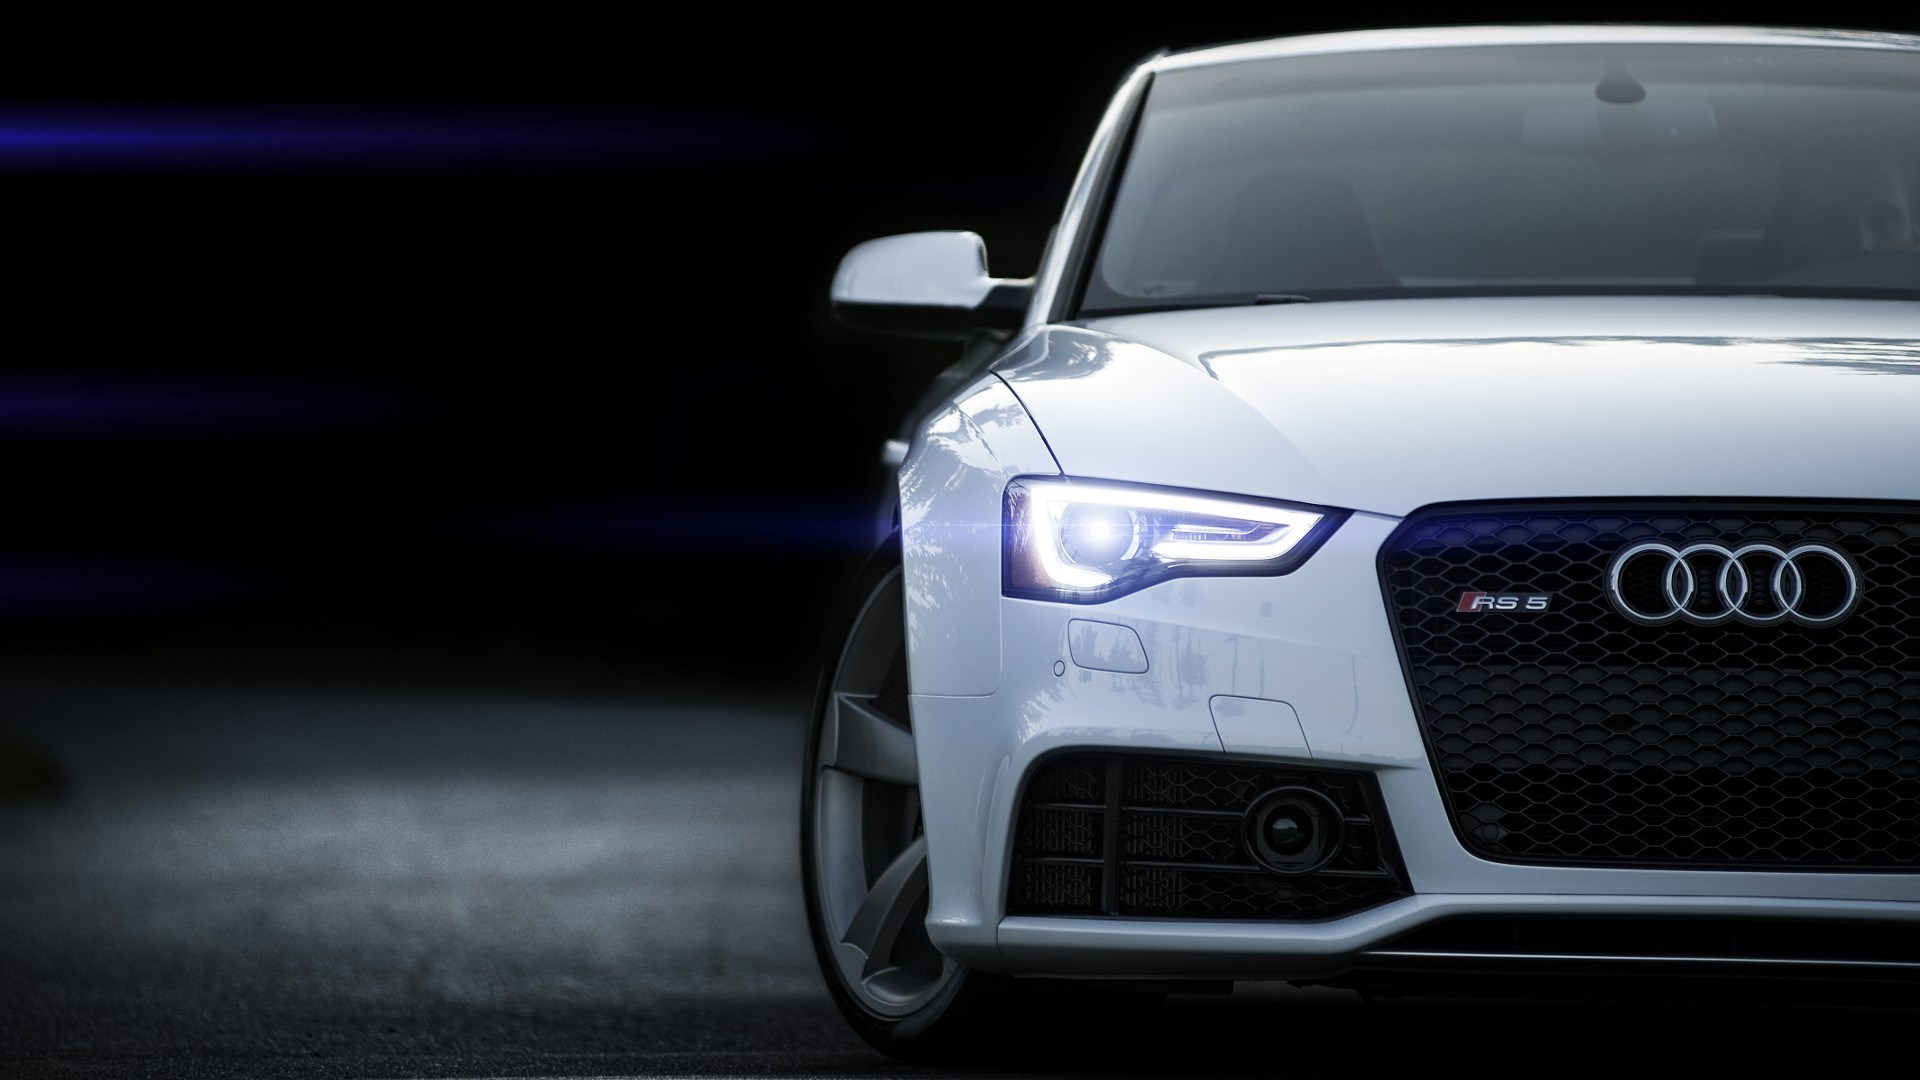 audi-1920x1080-background-wallpaper-wpc5802365